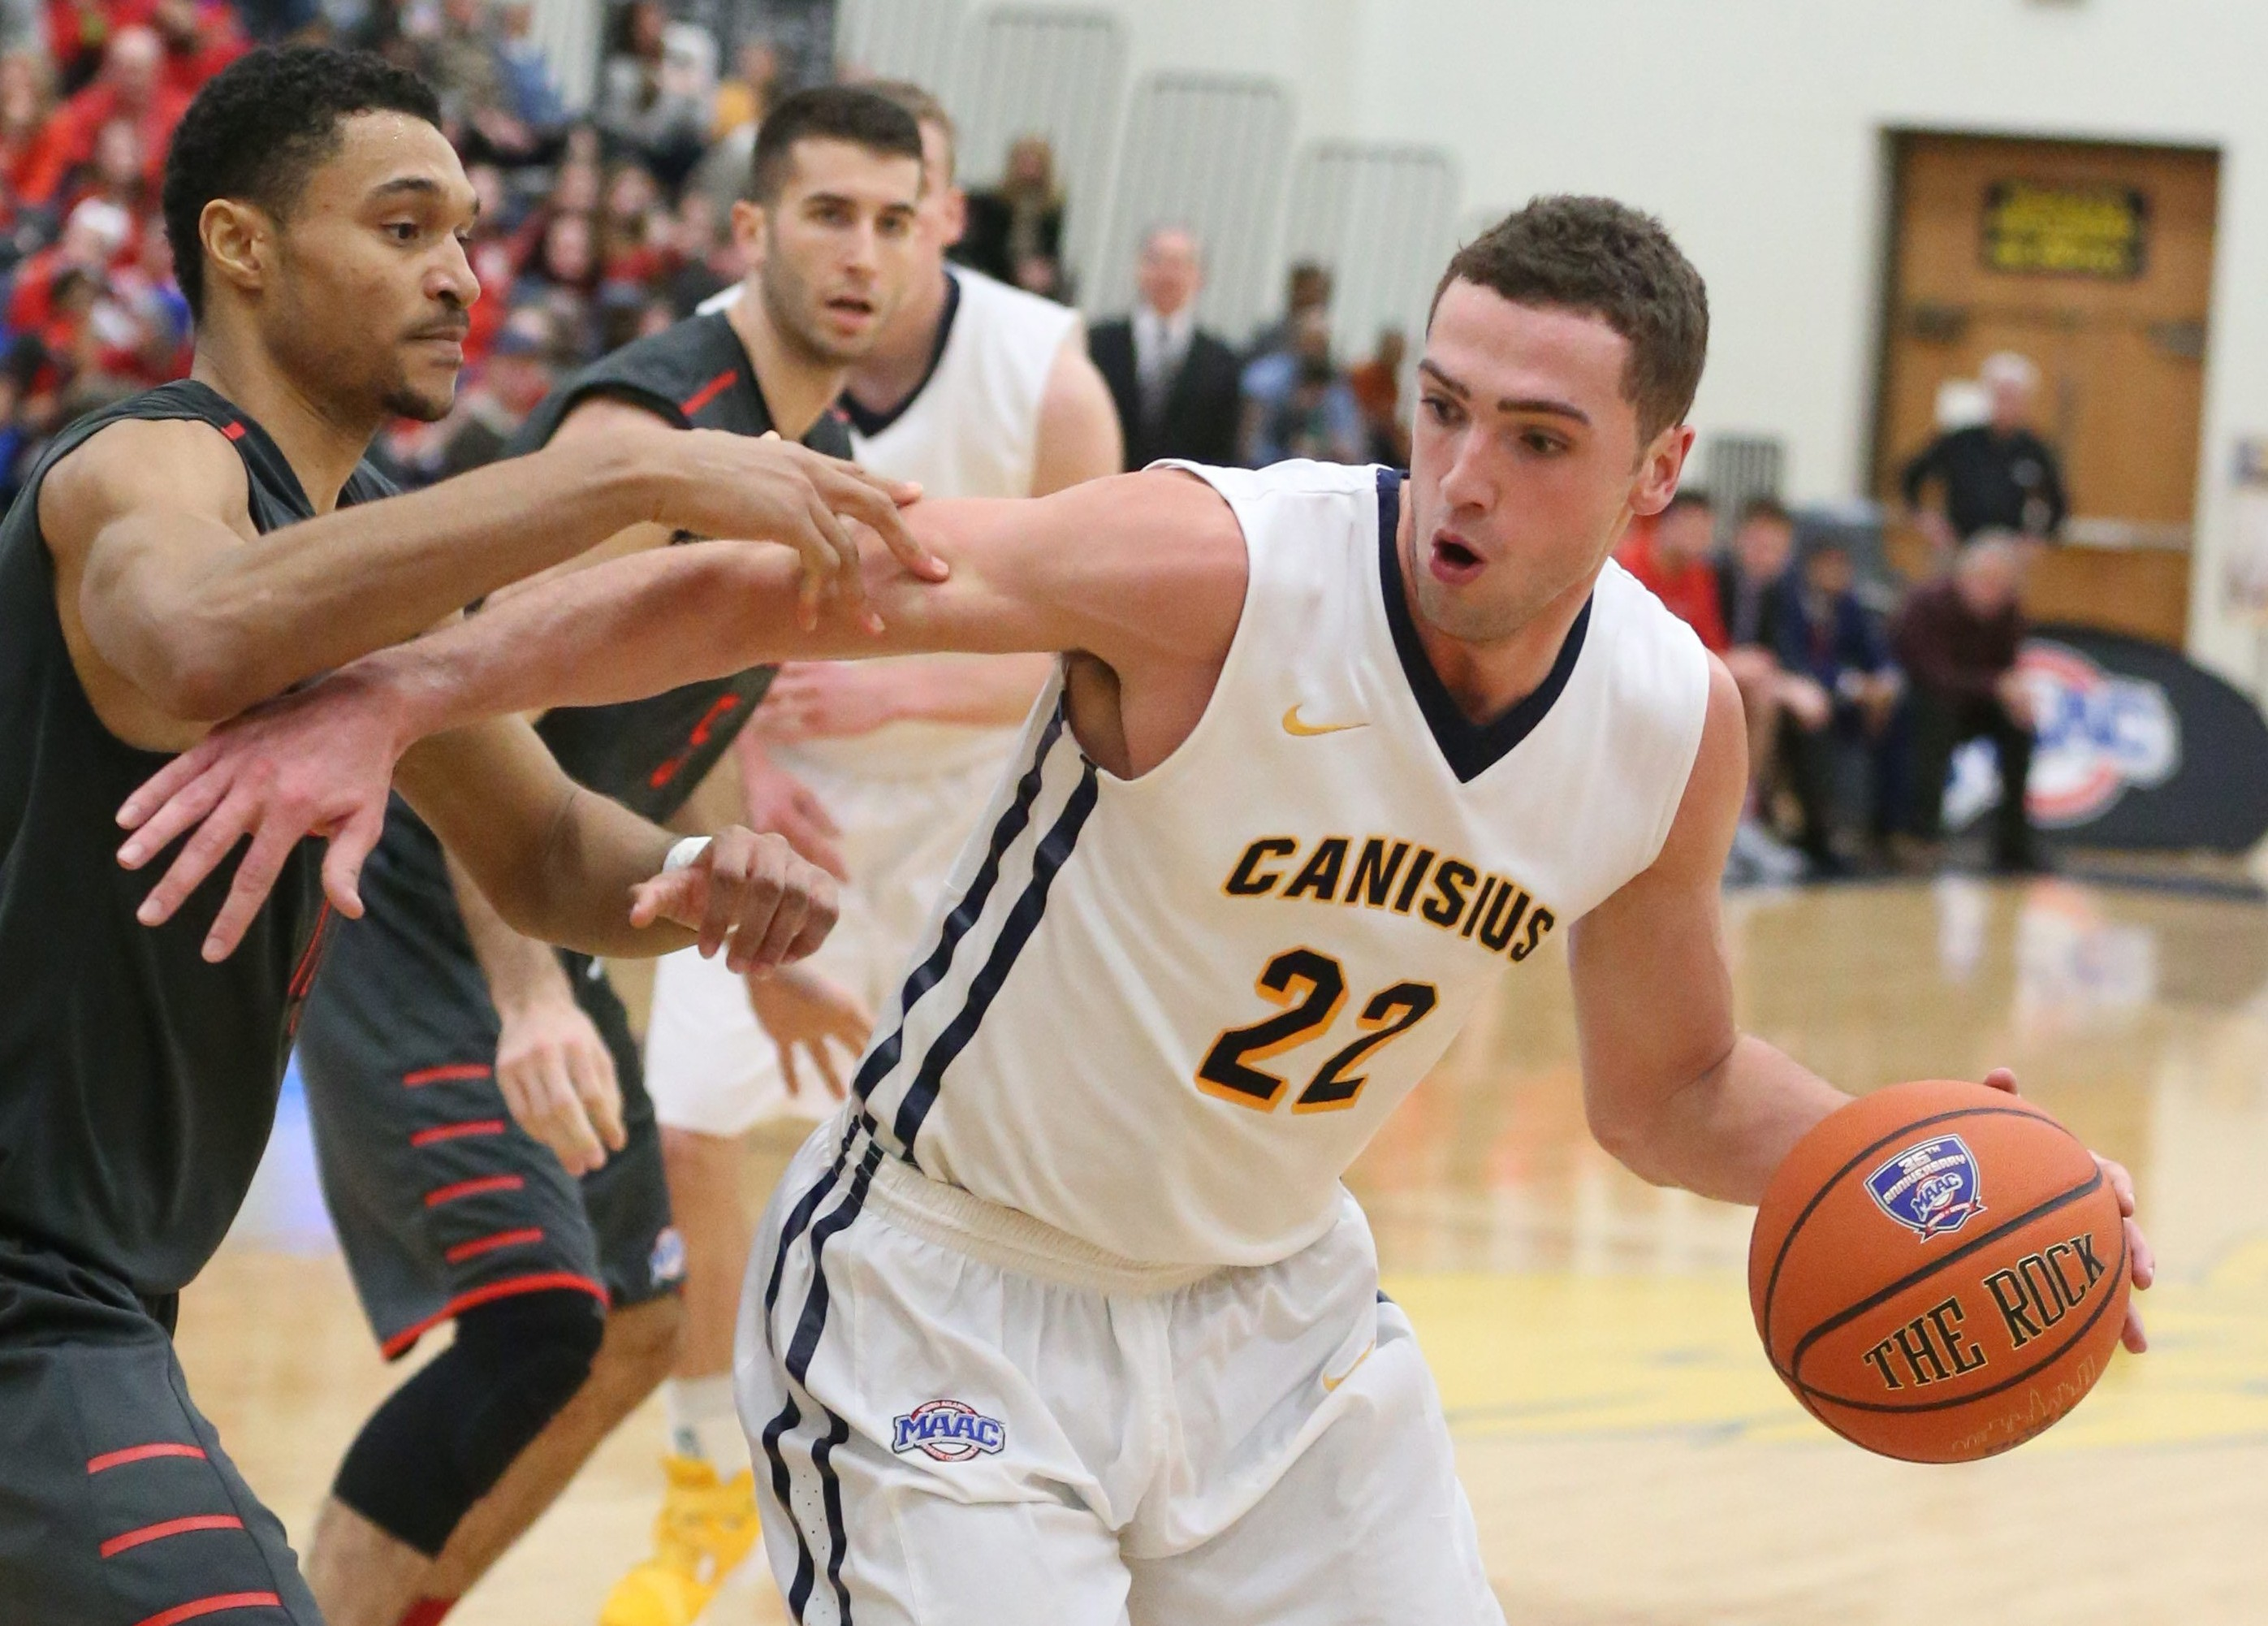 Phil Valenti and the Griffs still will play Niagara twice in the MAAC schedule.